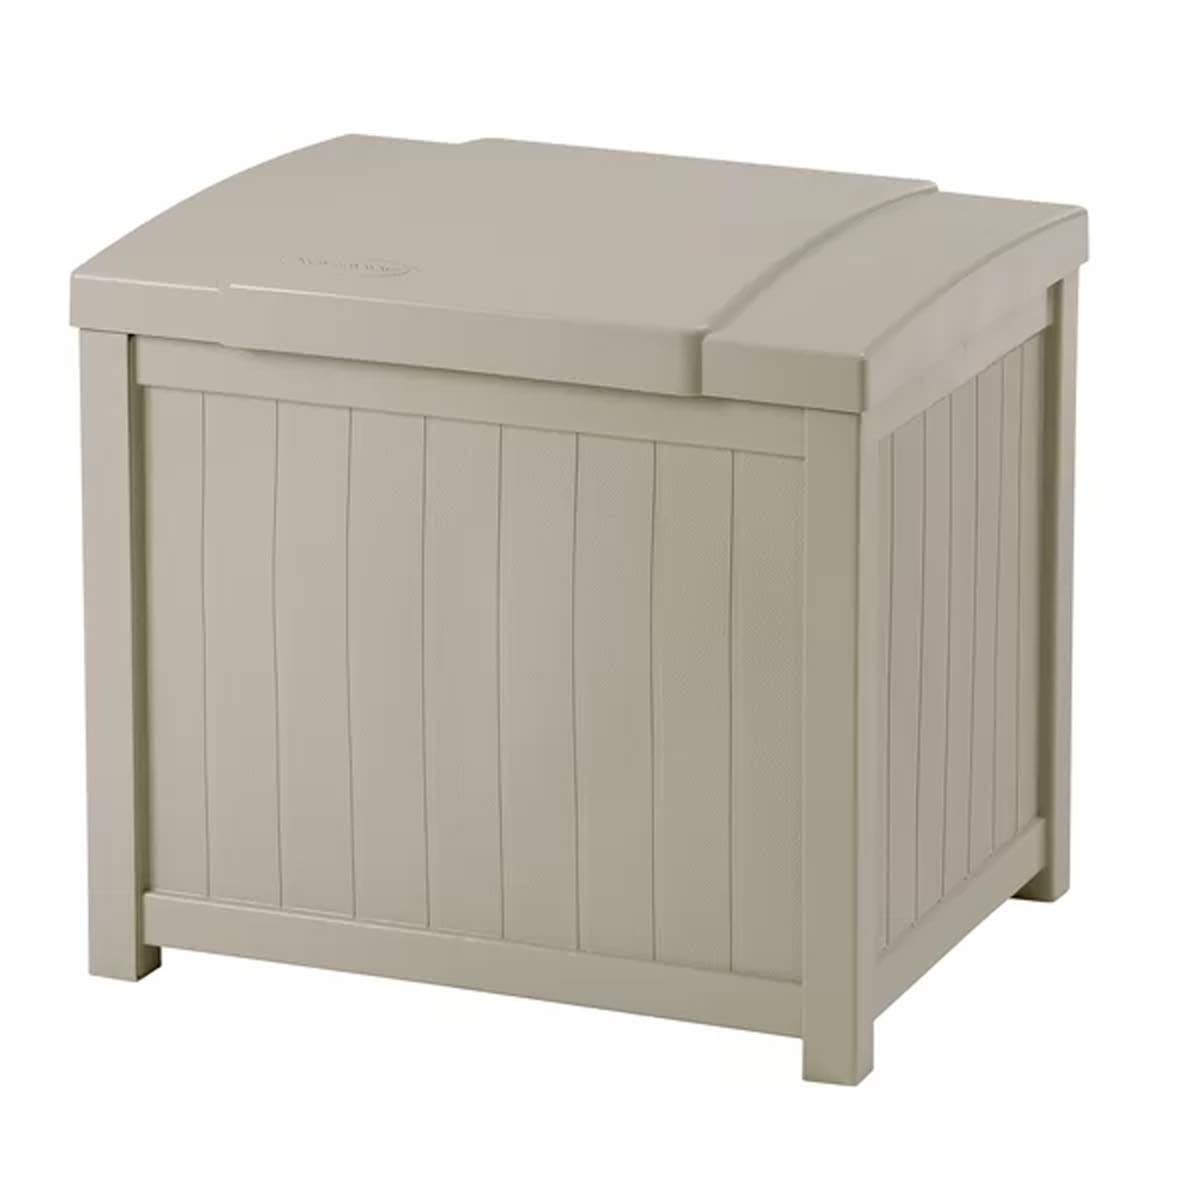 J&M Garden Storage Deck Box 22 Gallon Resin Outdoor Patio Container in Taupe Finish